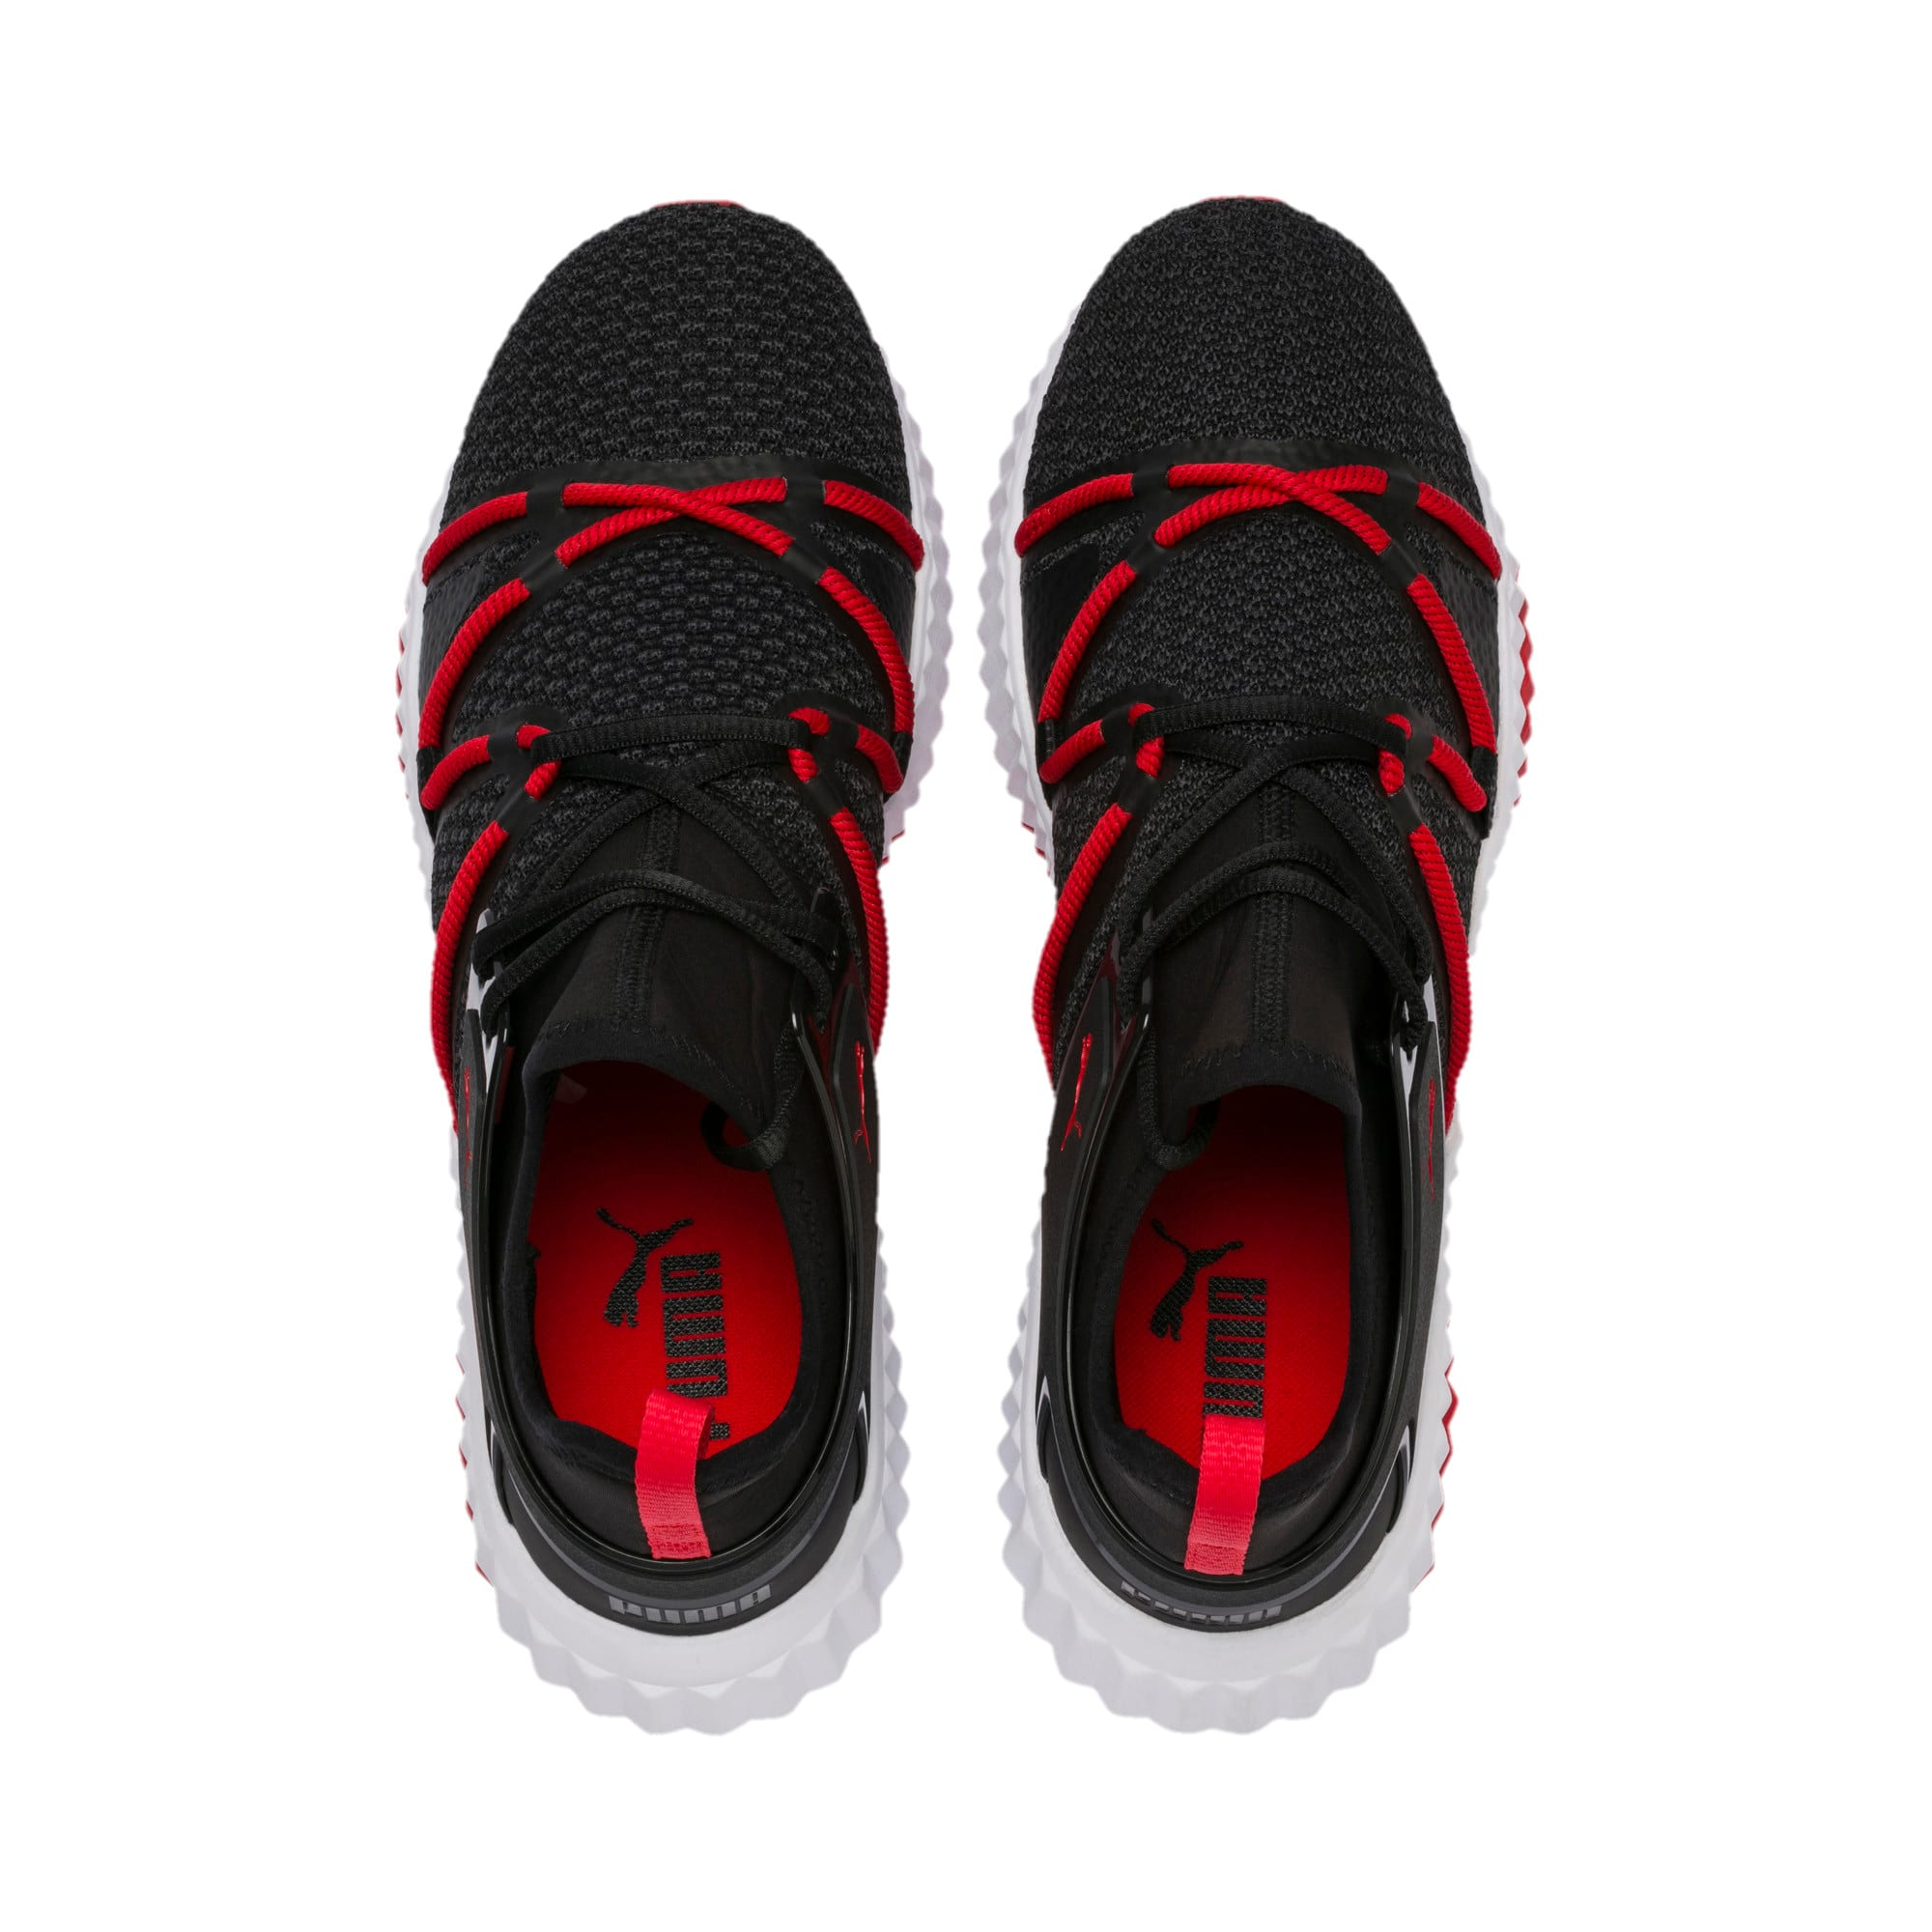 Thumbnail 6 of Defy Deco Men's Training Shoes, Puma Black-High Risk Red, medium